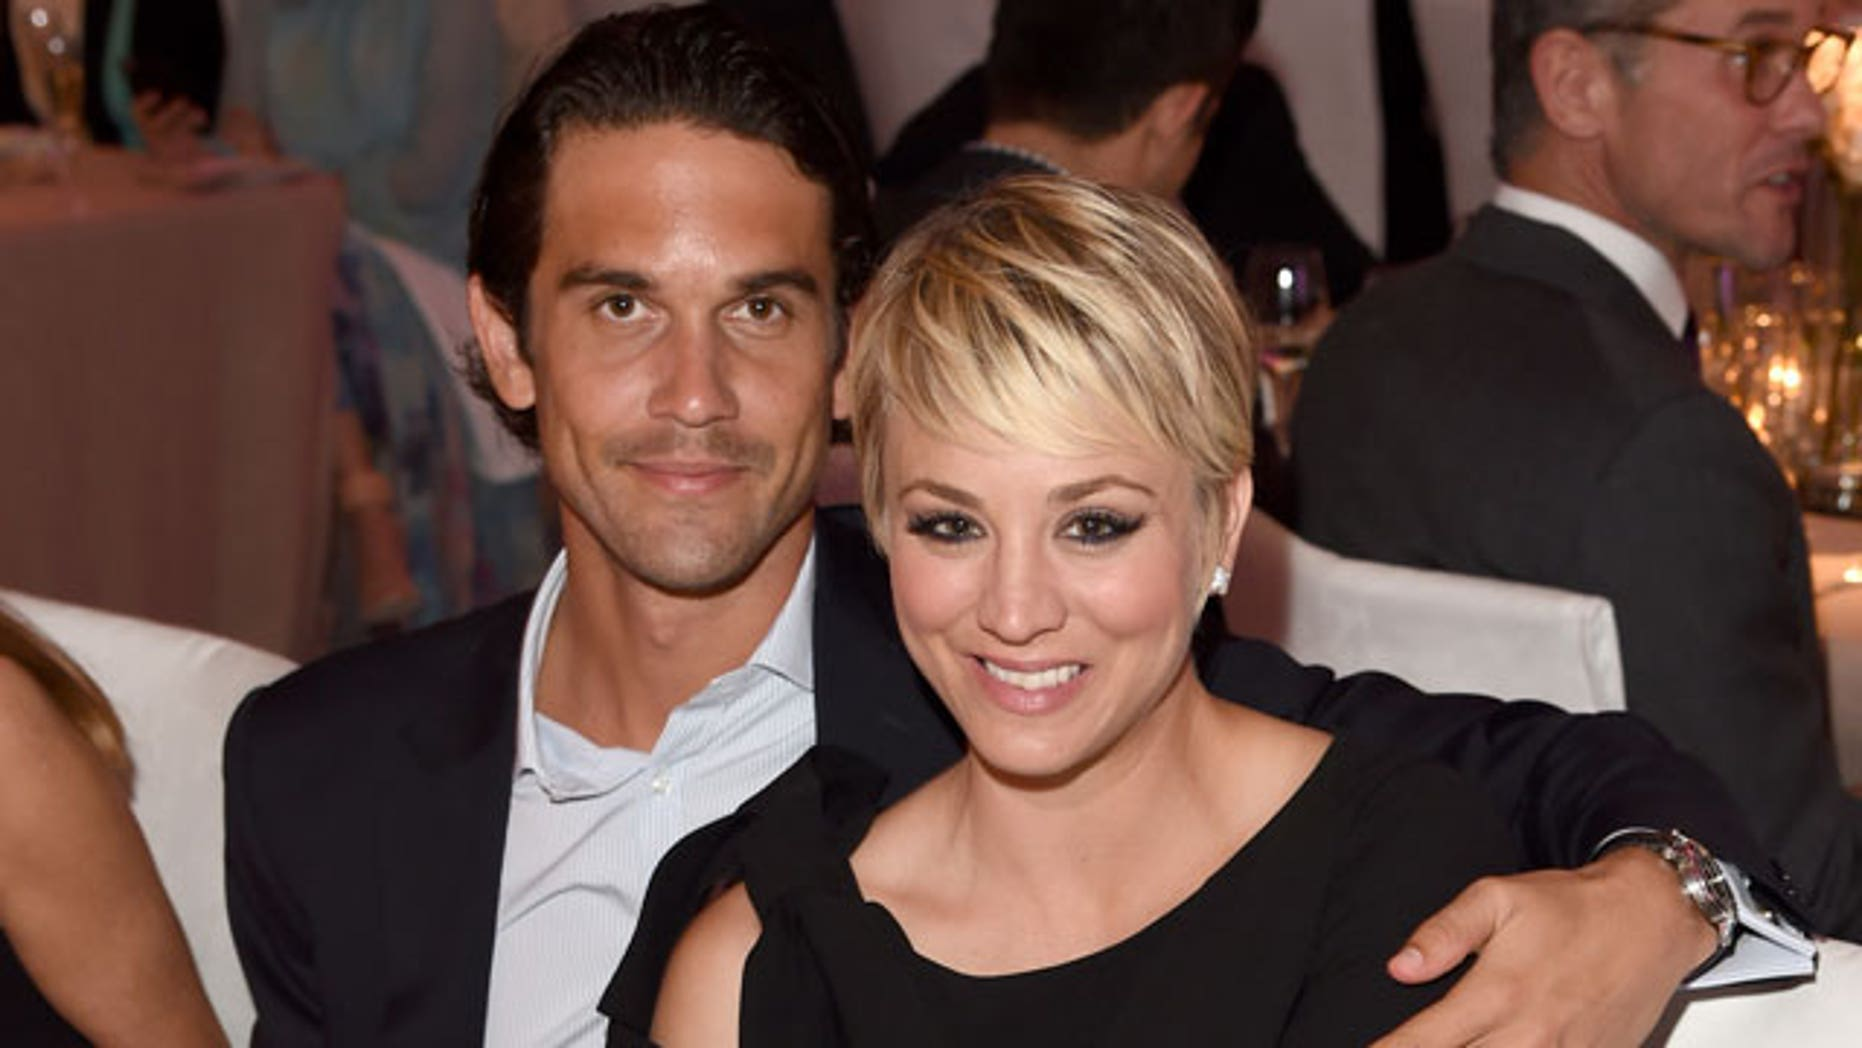 Ryan Sweeting and Kaley Cuoco. The couple recently announced they are divorcing.